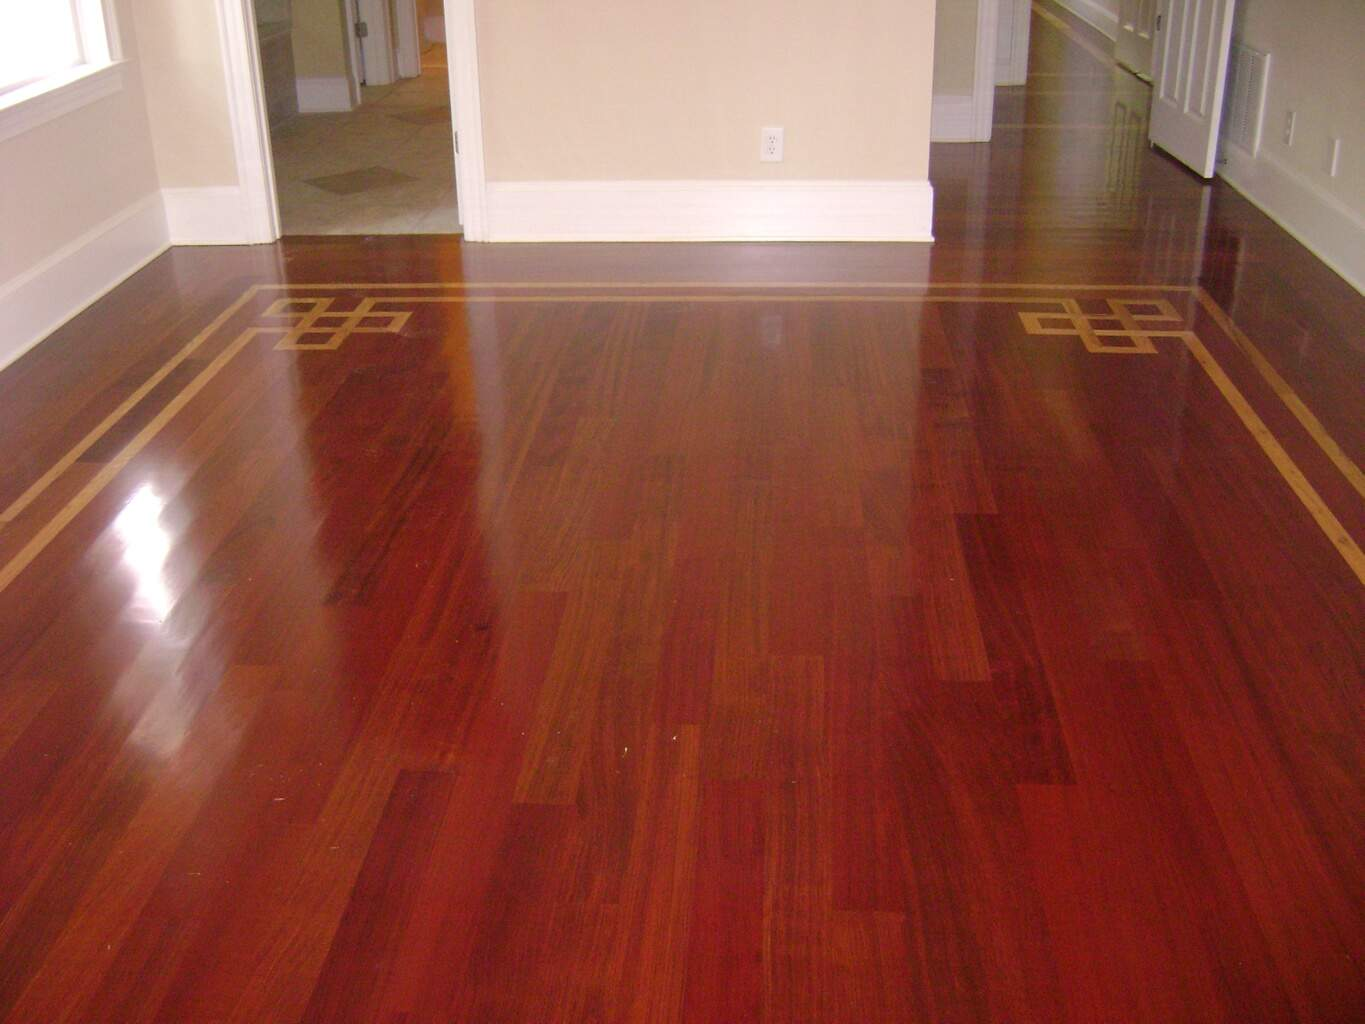 Wood floor inlay long island ny refinish restore hardwoods for Different colors of hardwood floors